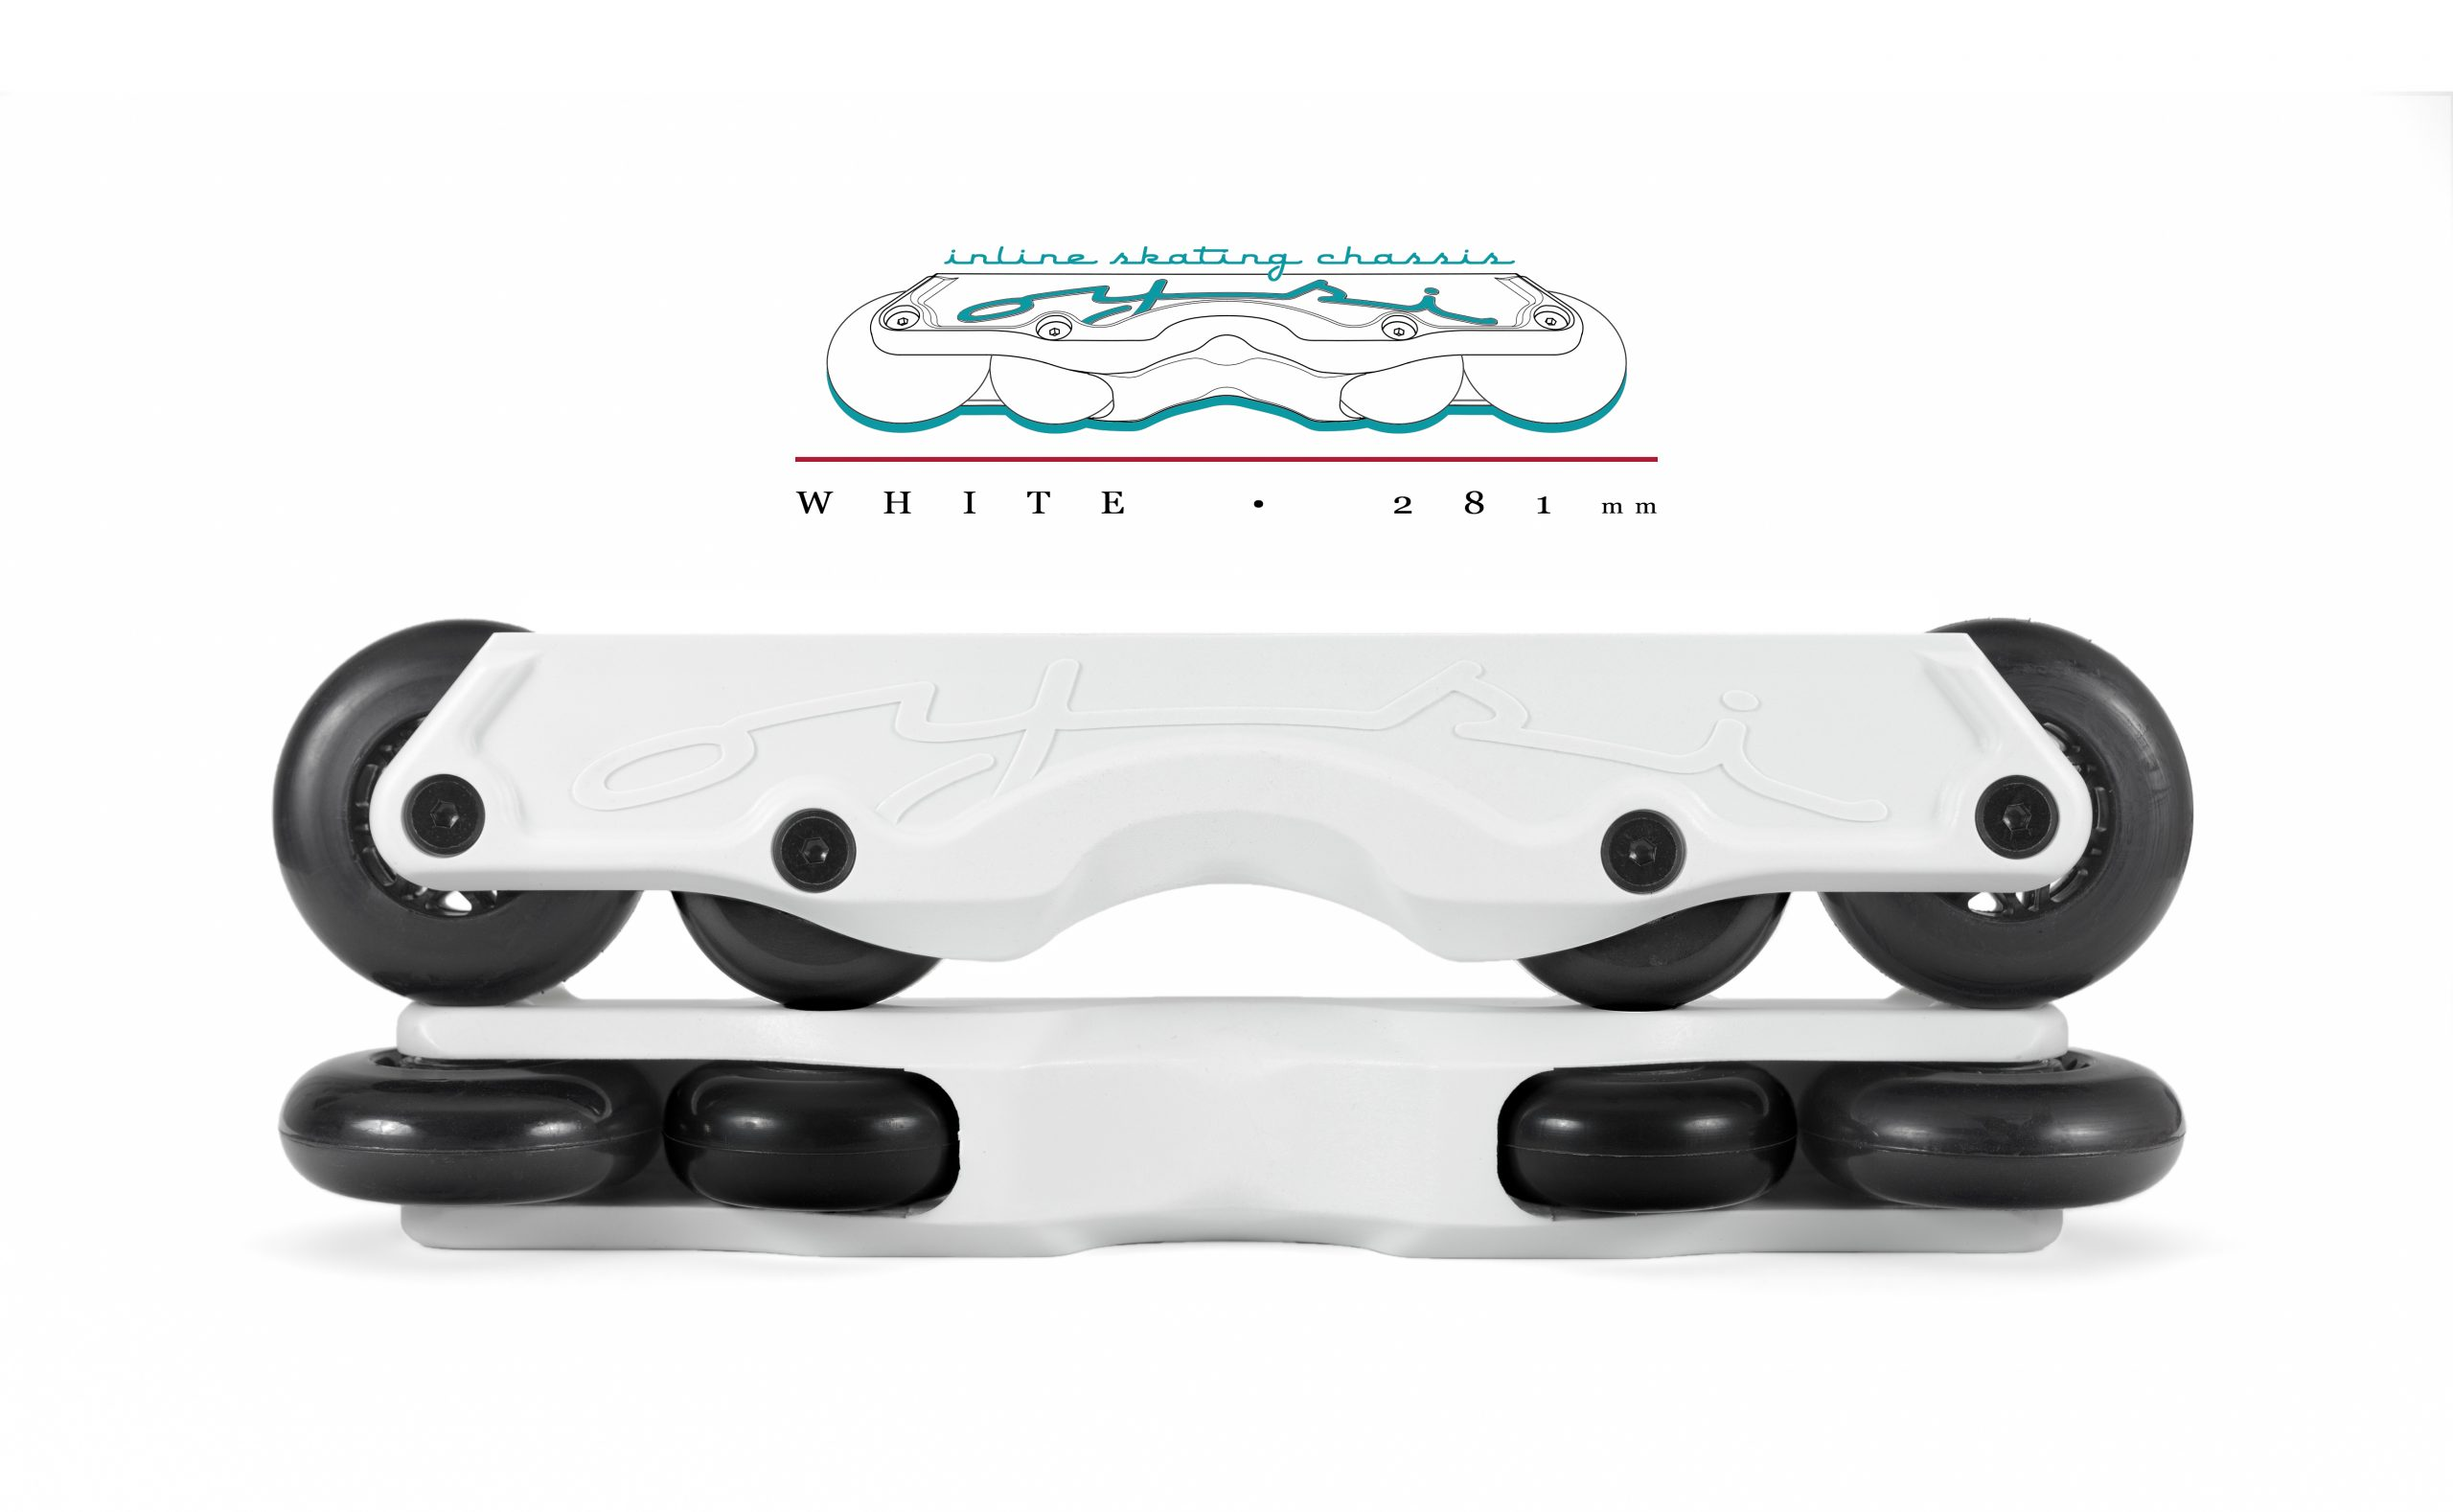 OISC Oysi Inline Skating Chassis 72mm White